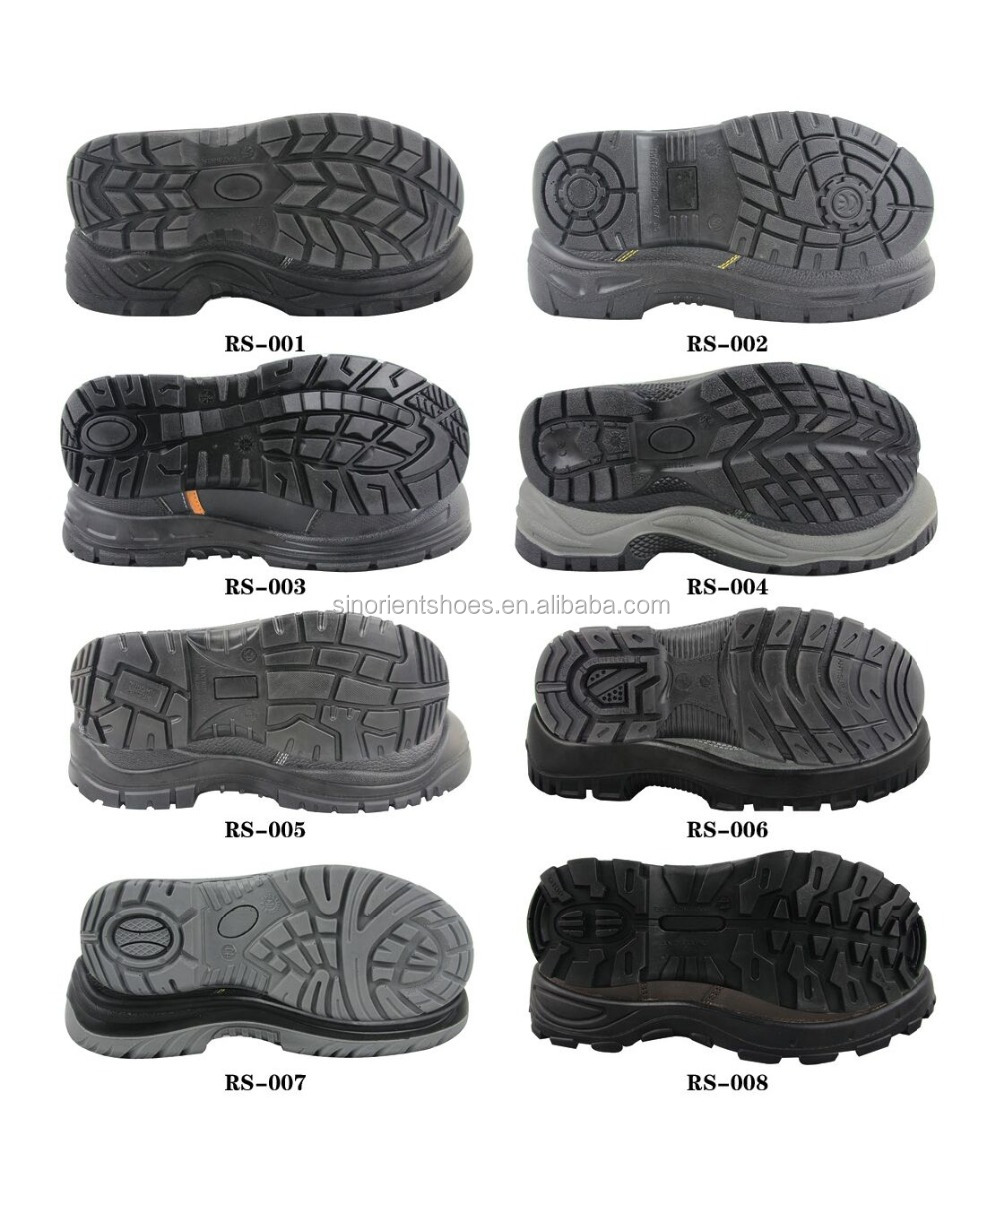 2017 best selling made in china CE certificate sport safety shoes sport work shoes fashionable safety shoes low price RS6007